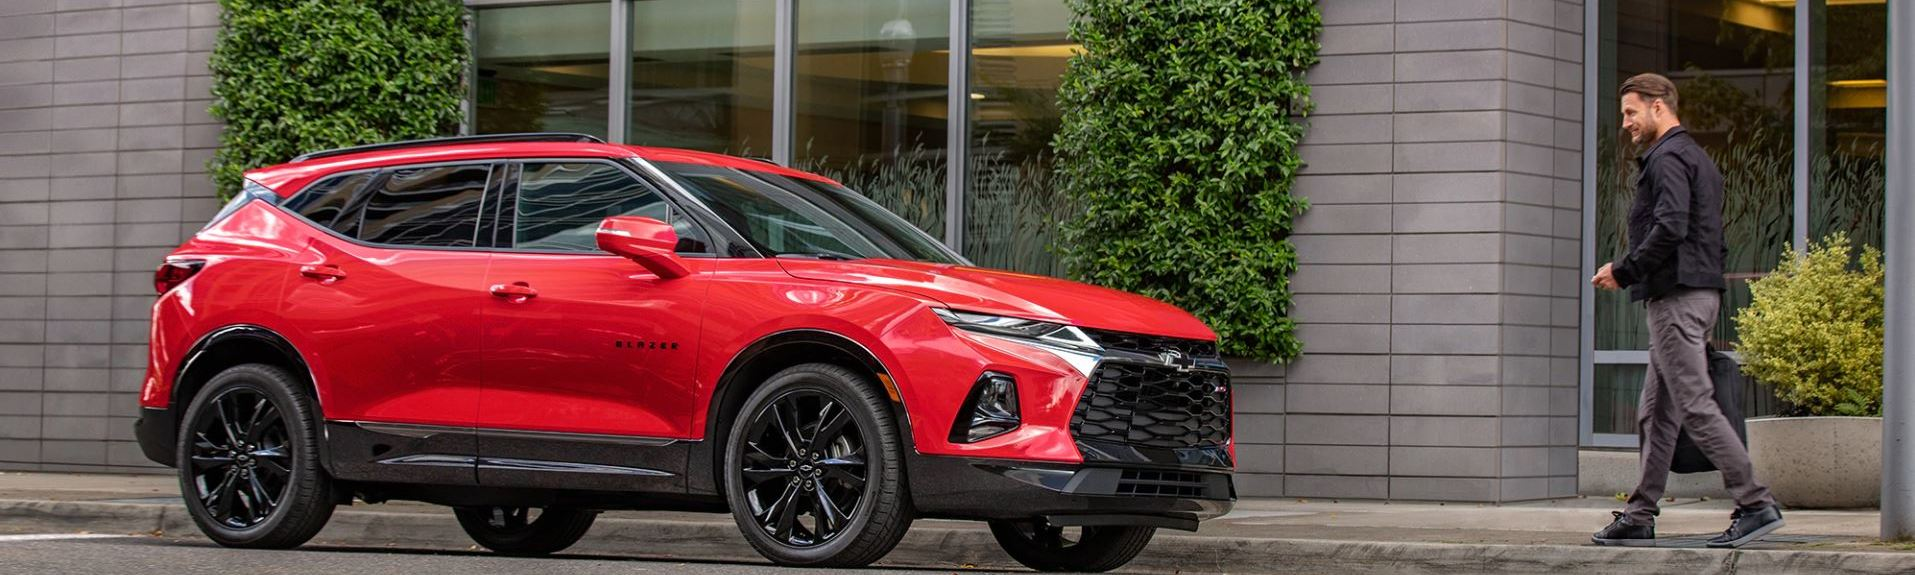 2020 Chevrolet Blazer Financing near Portage, IN